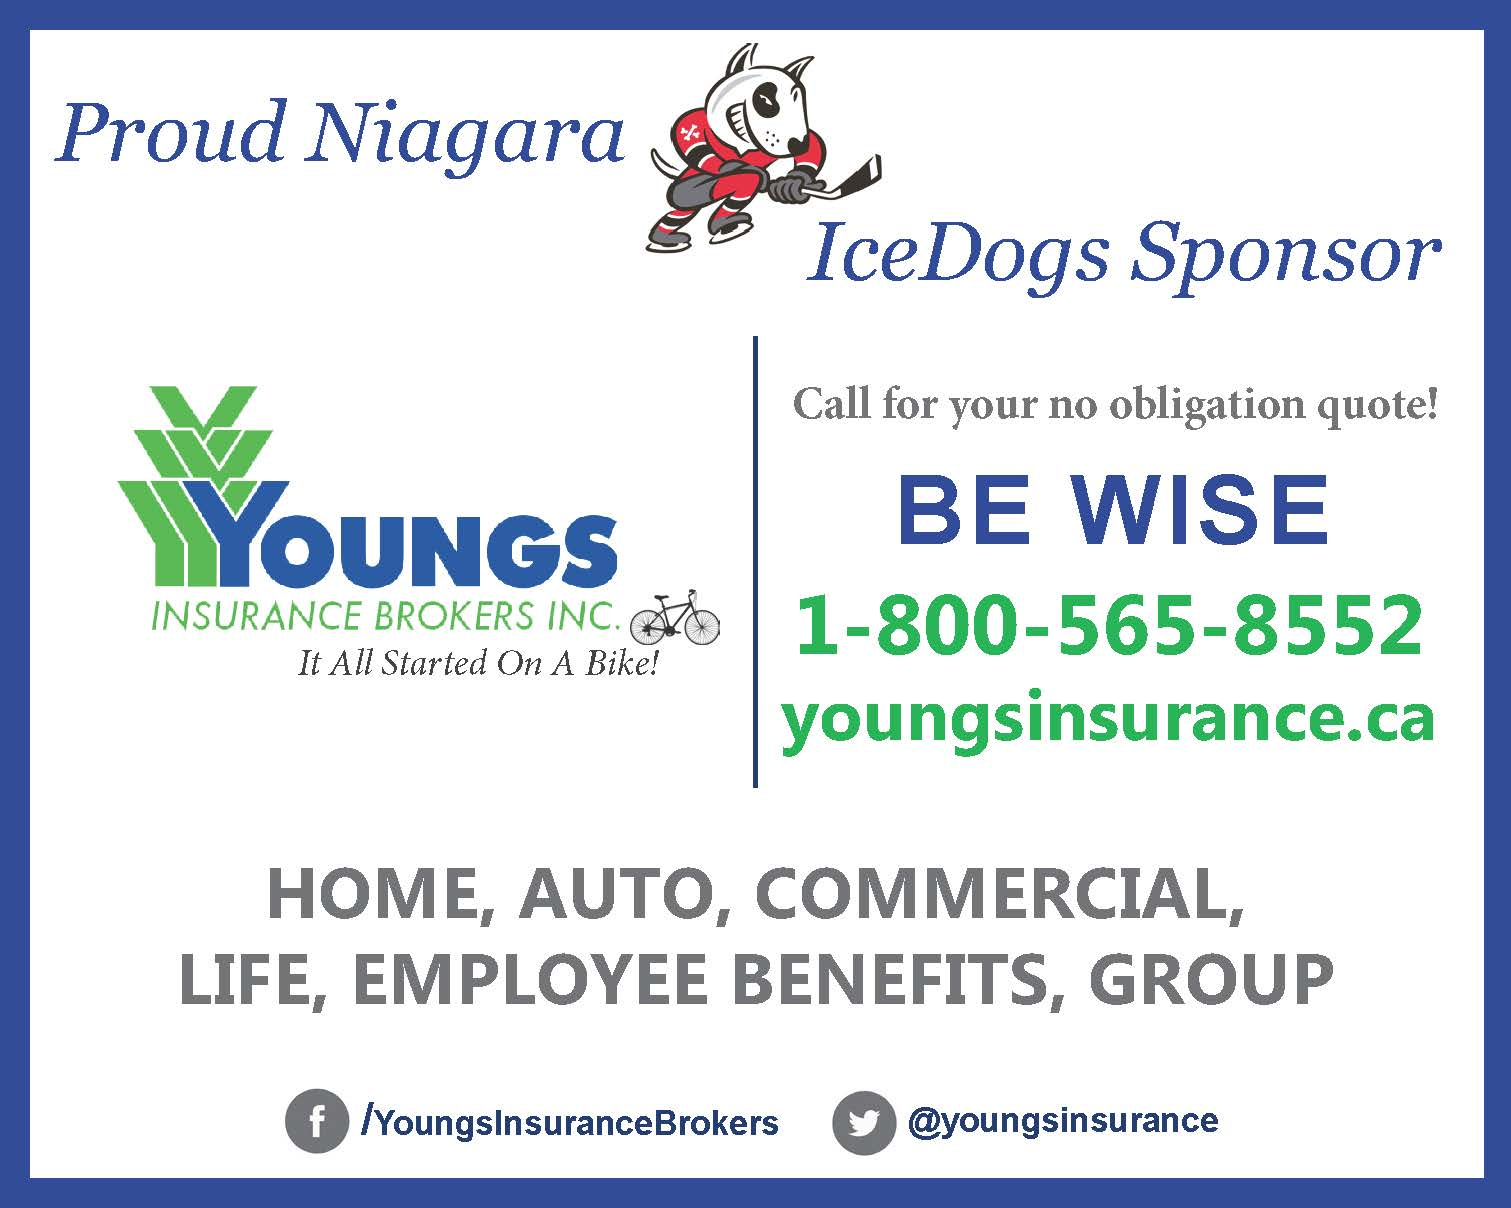 Proud Niagara Ice Dogs Sponsor